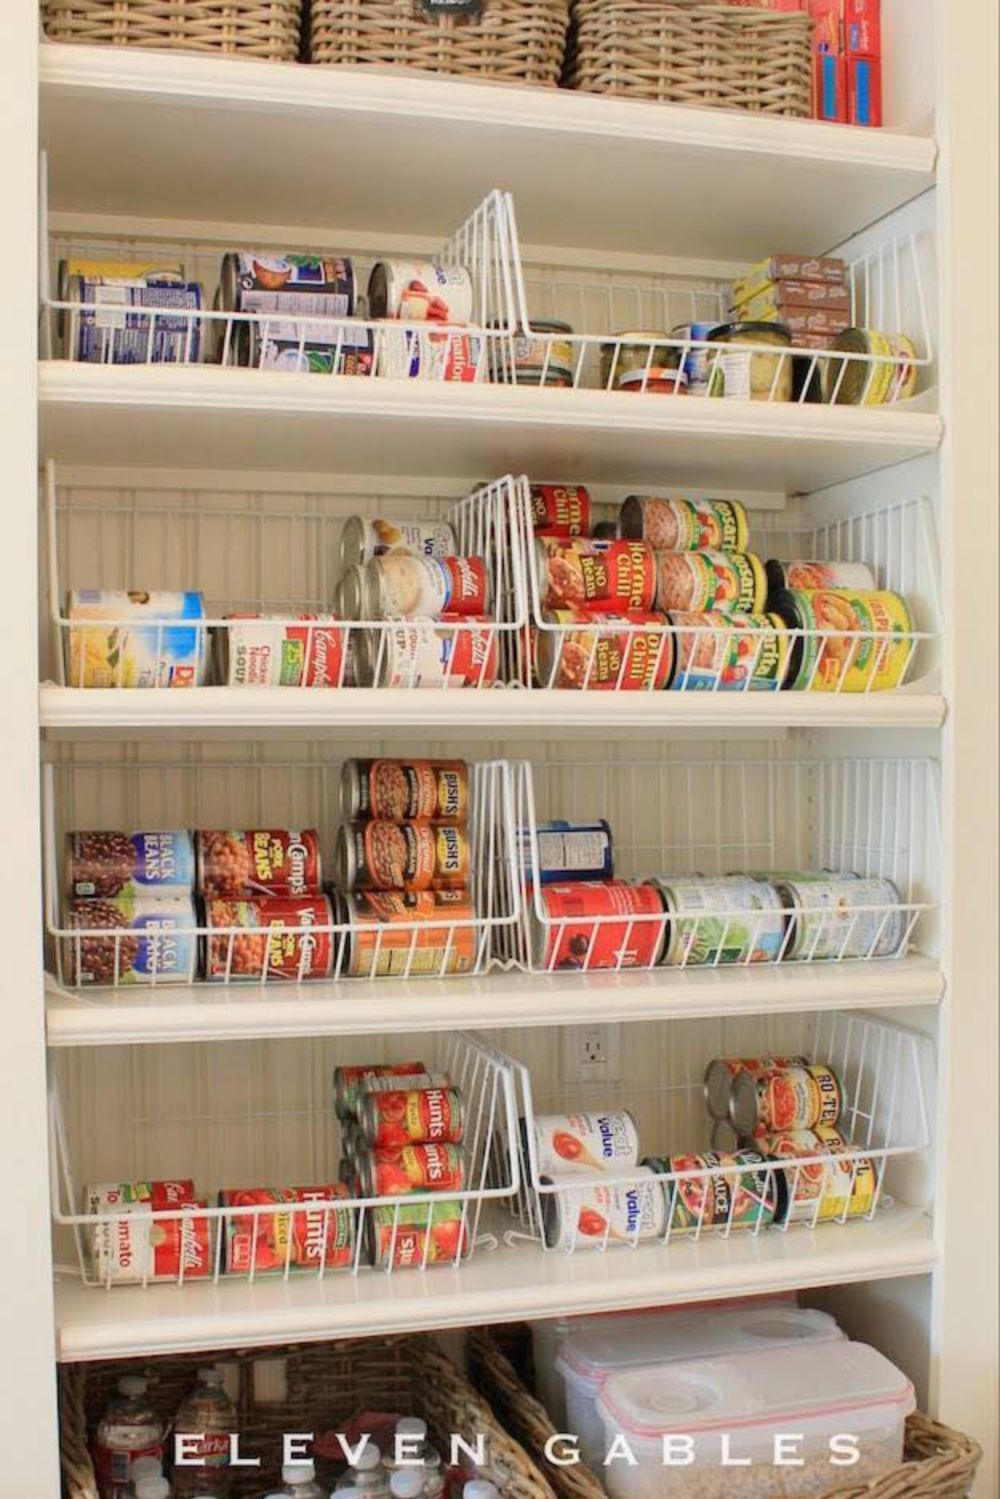 35 Genius Kitchen Organization Ideas | Despensa, Almacenamiento y ...